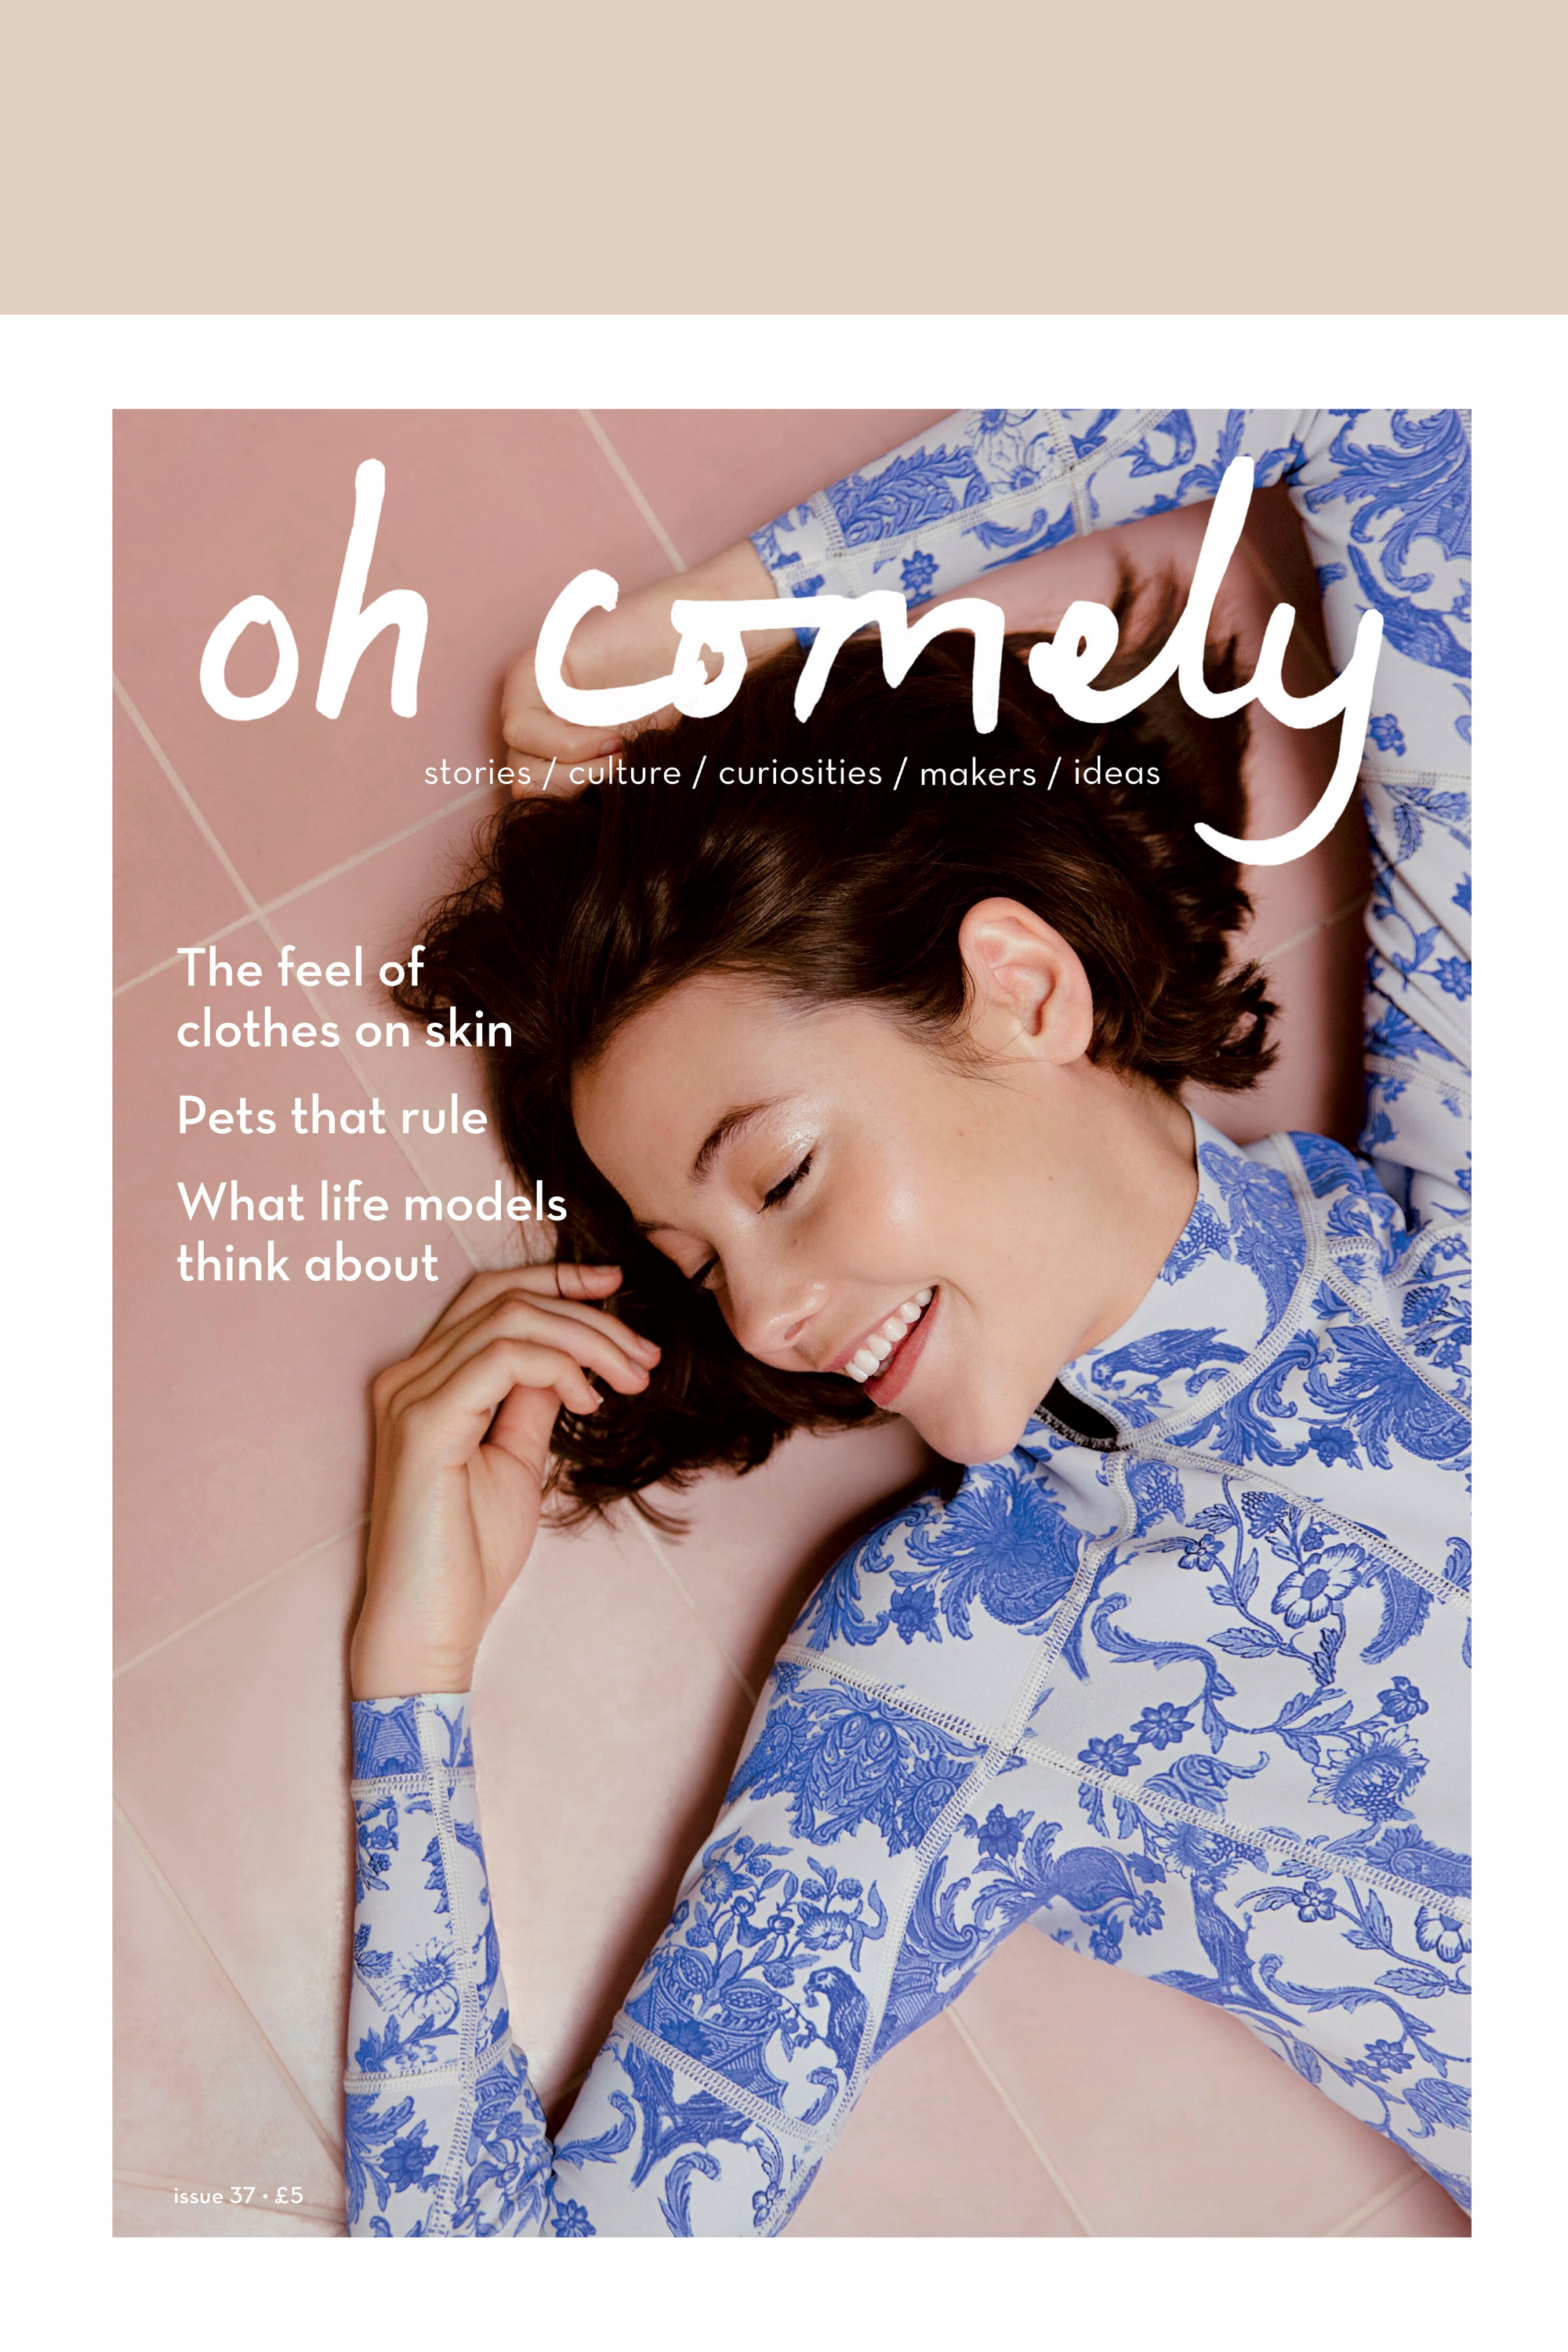 Oh Comely - Issue 37